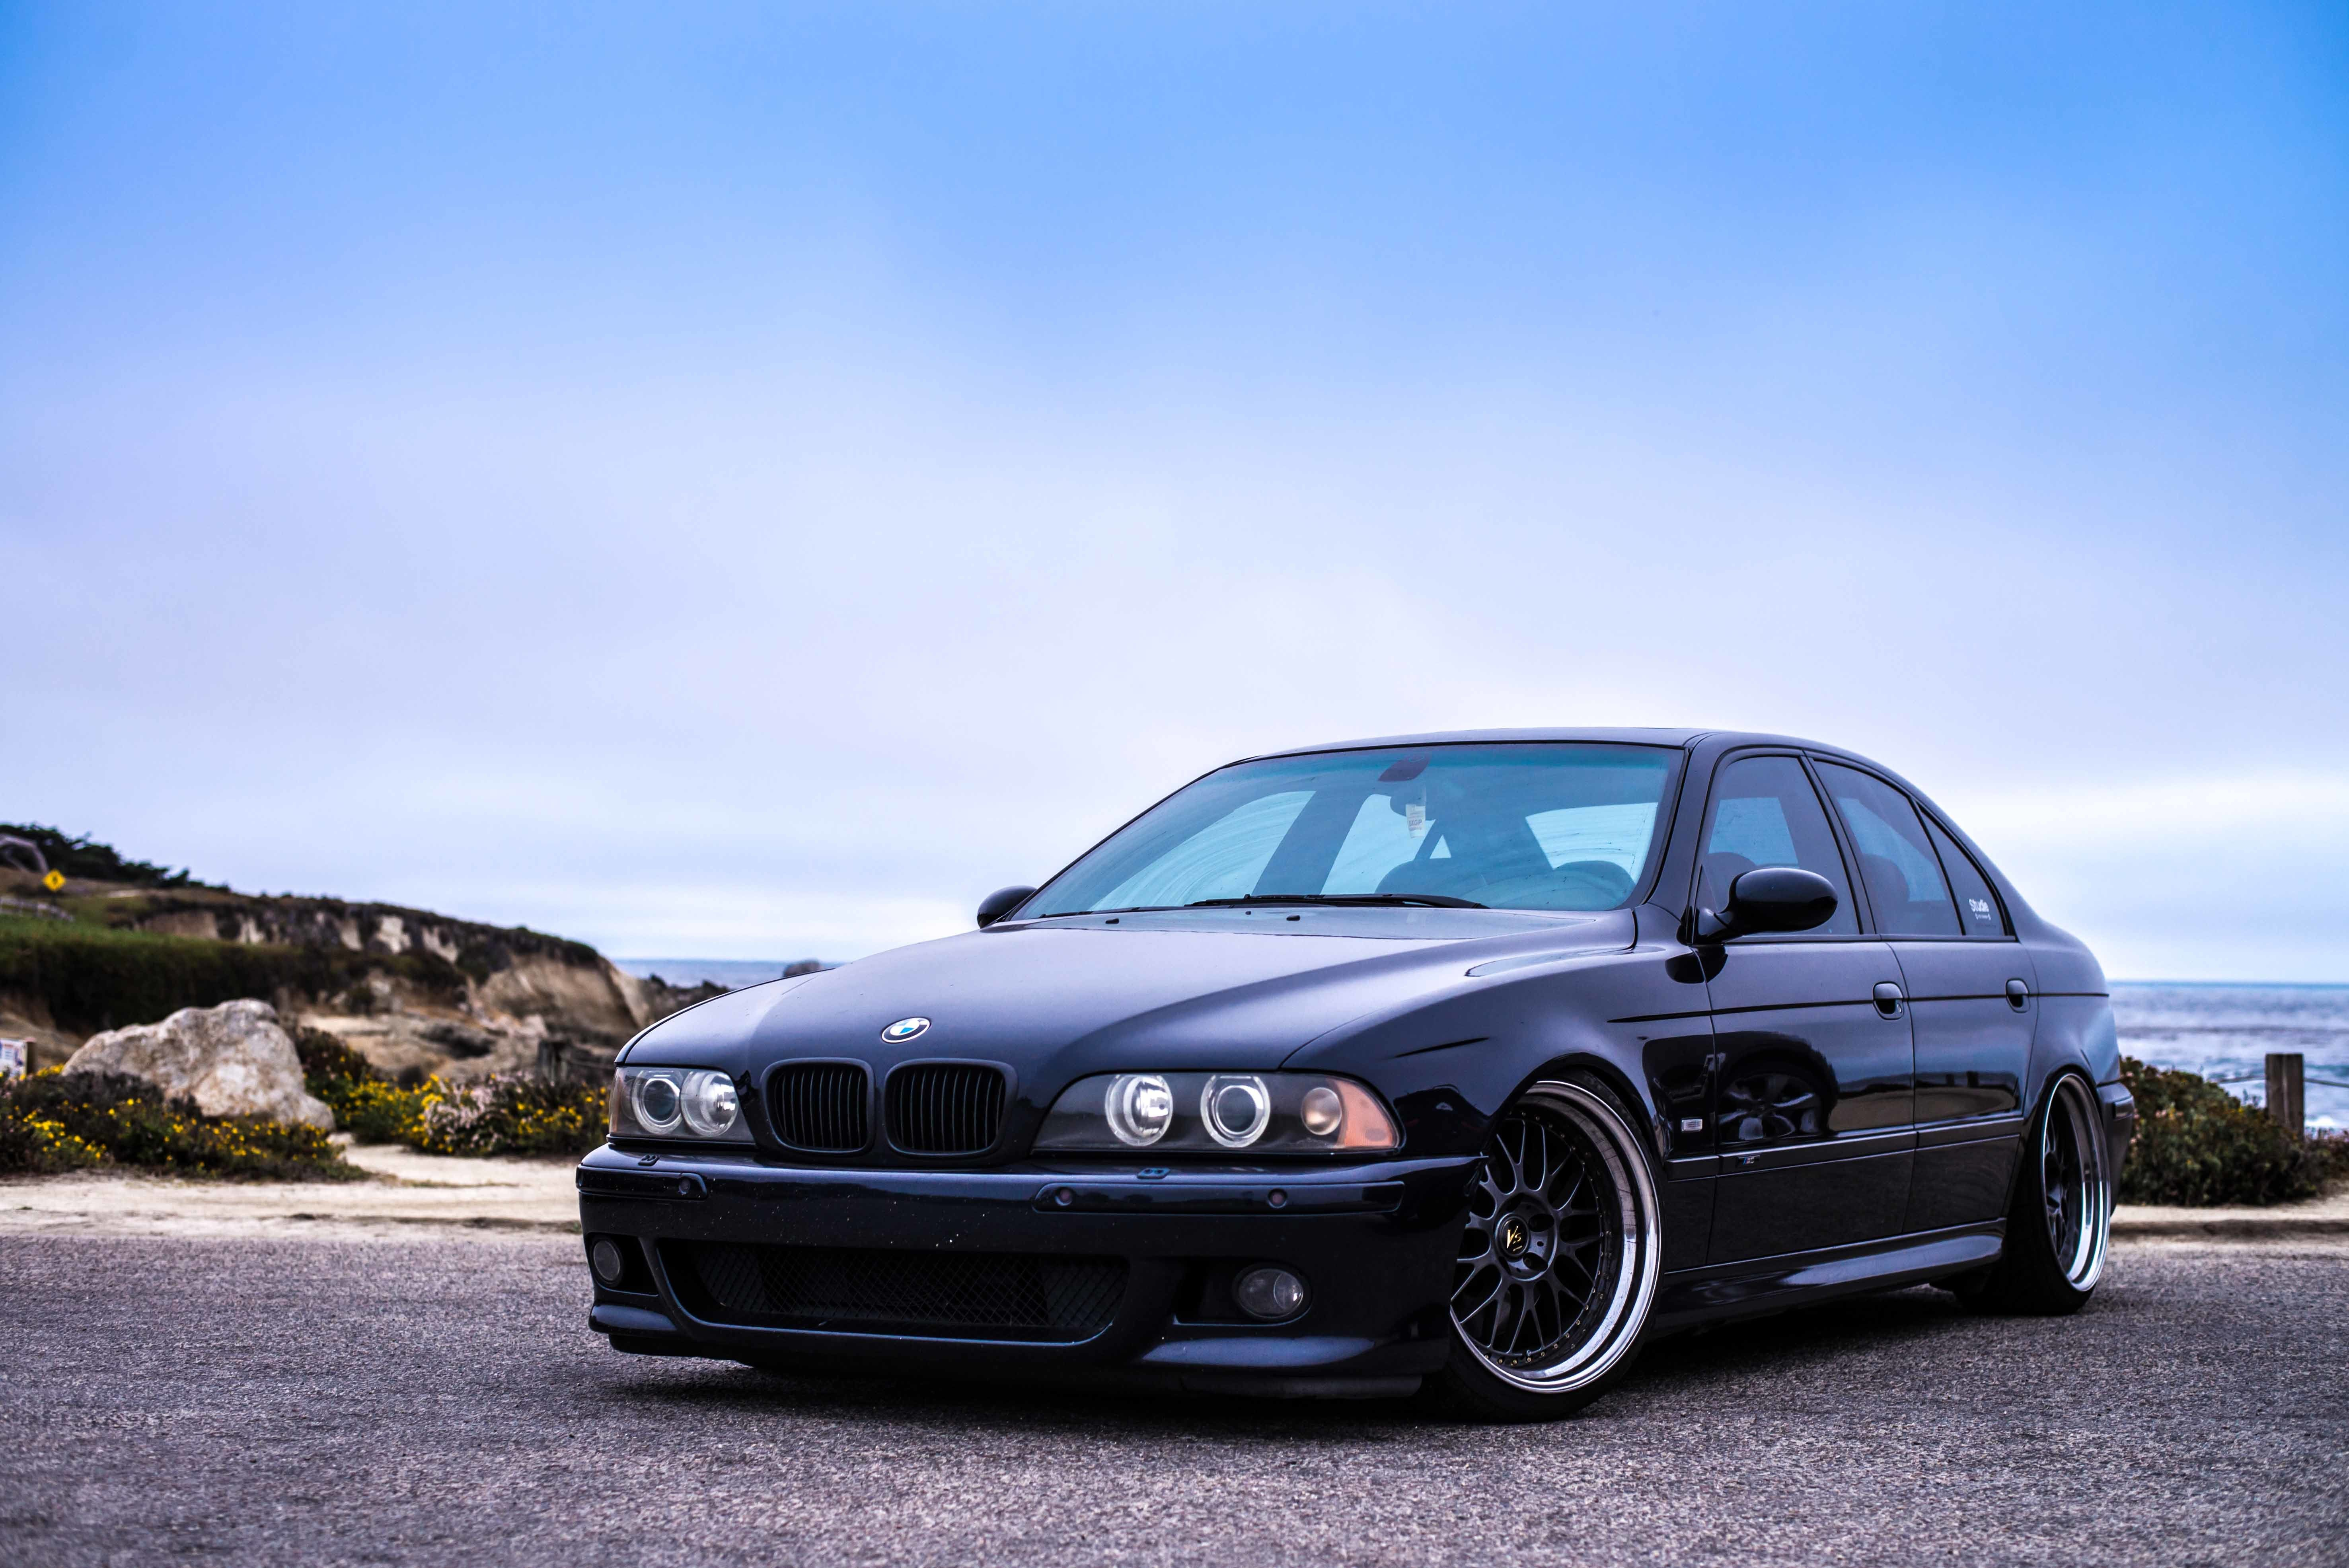 Bmw E39 Wallpaper 17 5904x3941